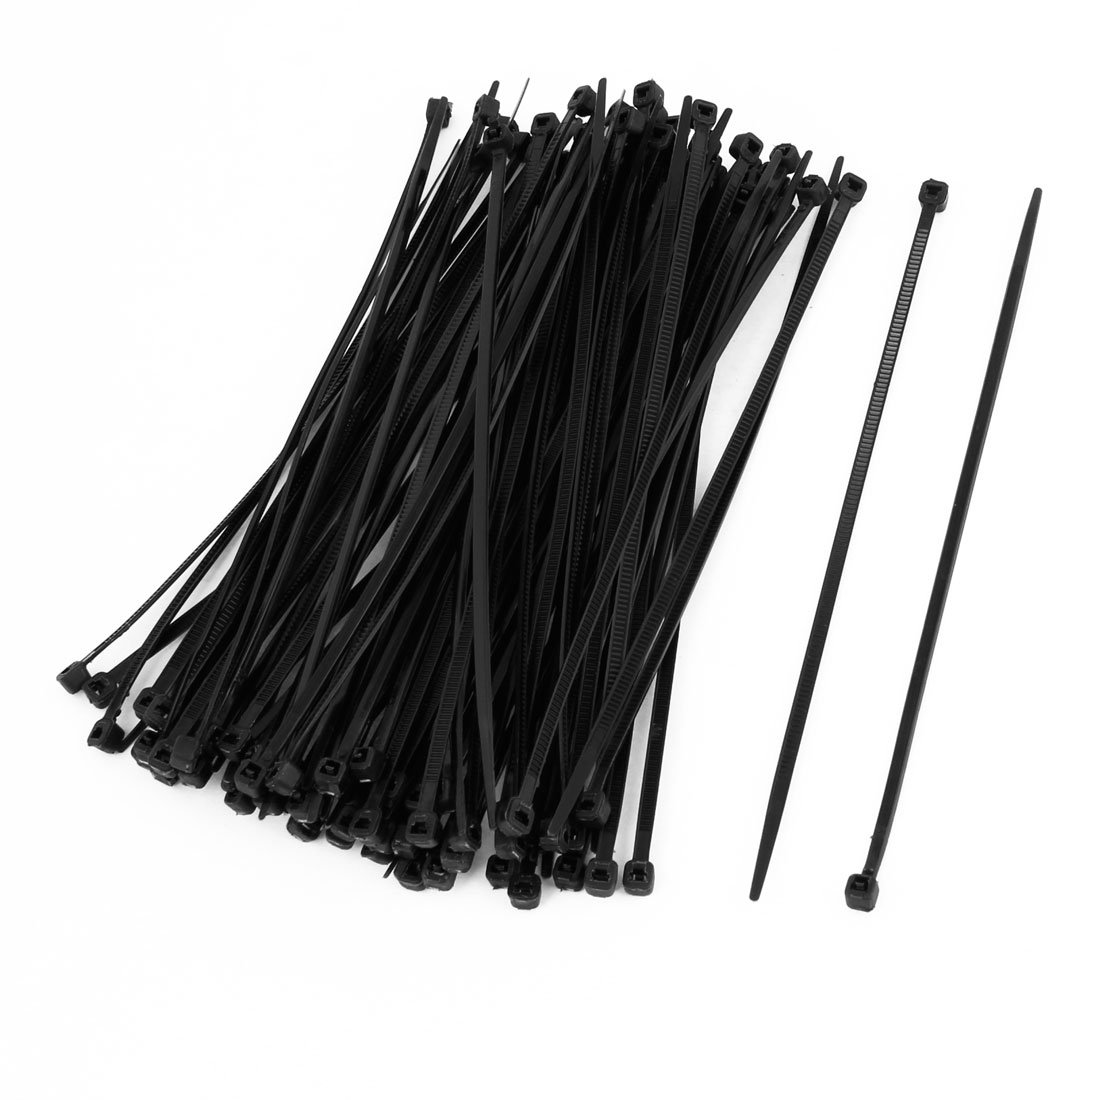 KSOL New Style 100 Pcs 150mm x 2mm Electrical Cable Tie Wrap Nylon Fastening Black